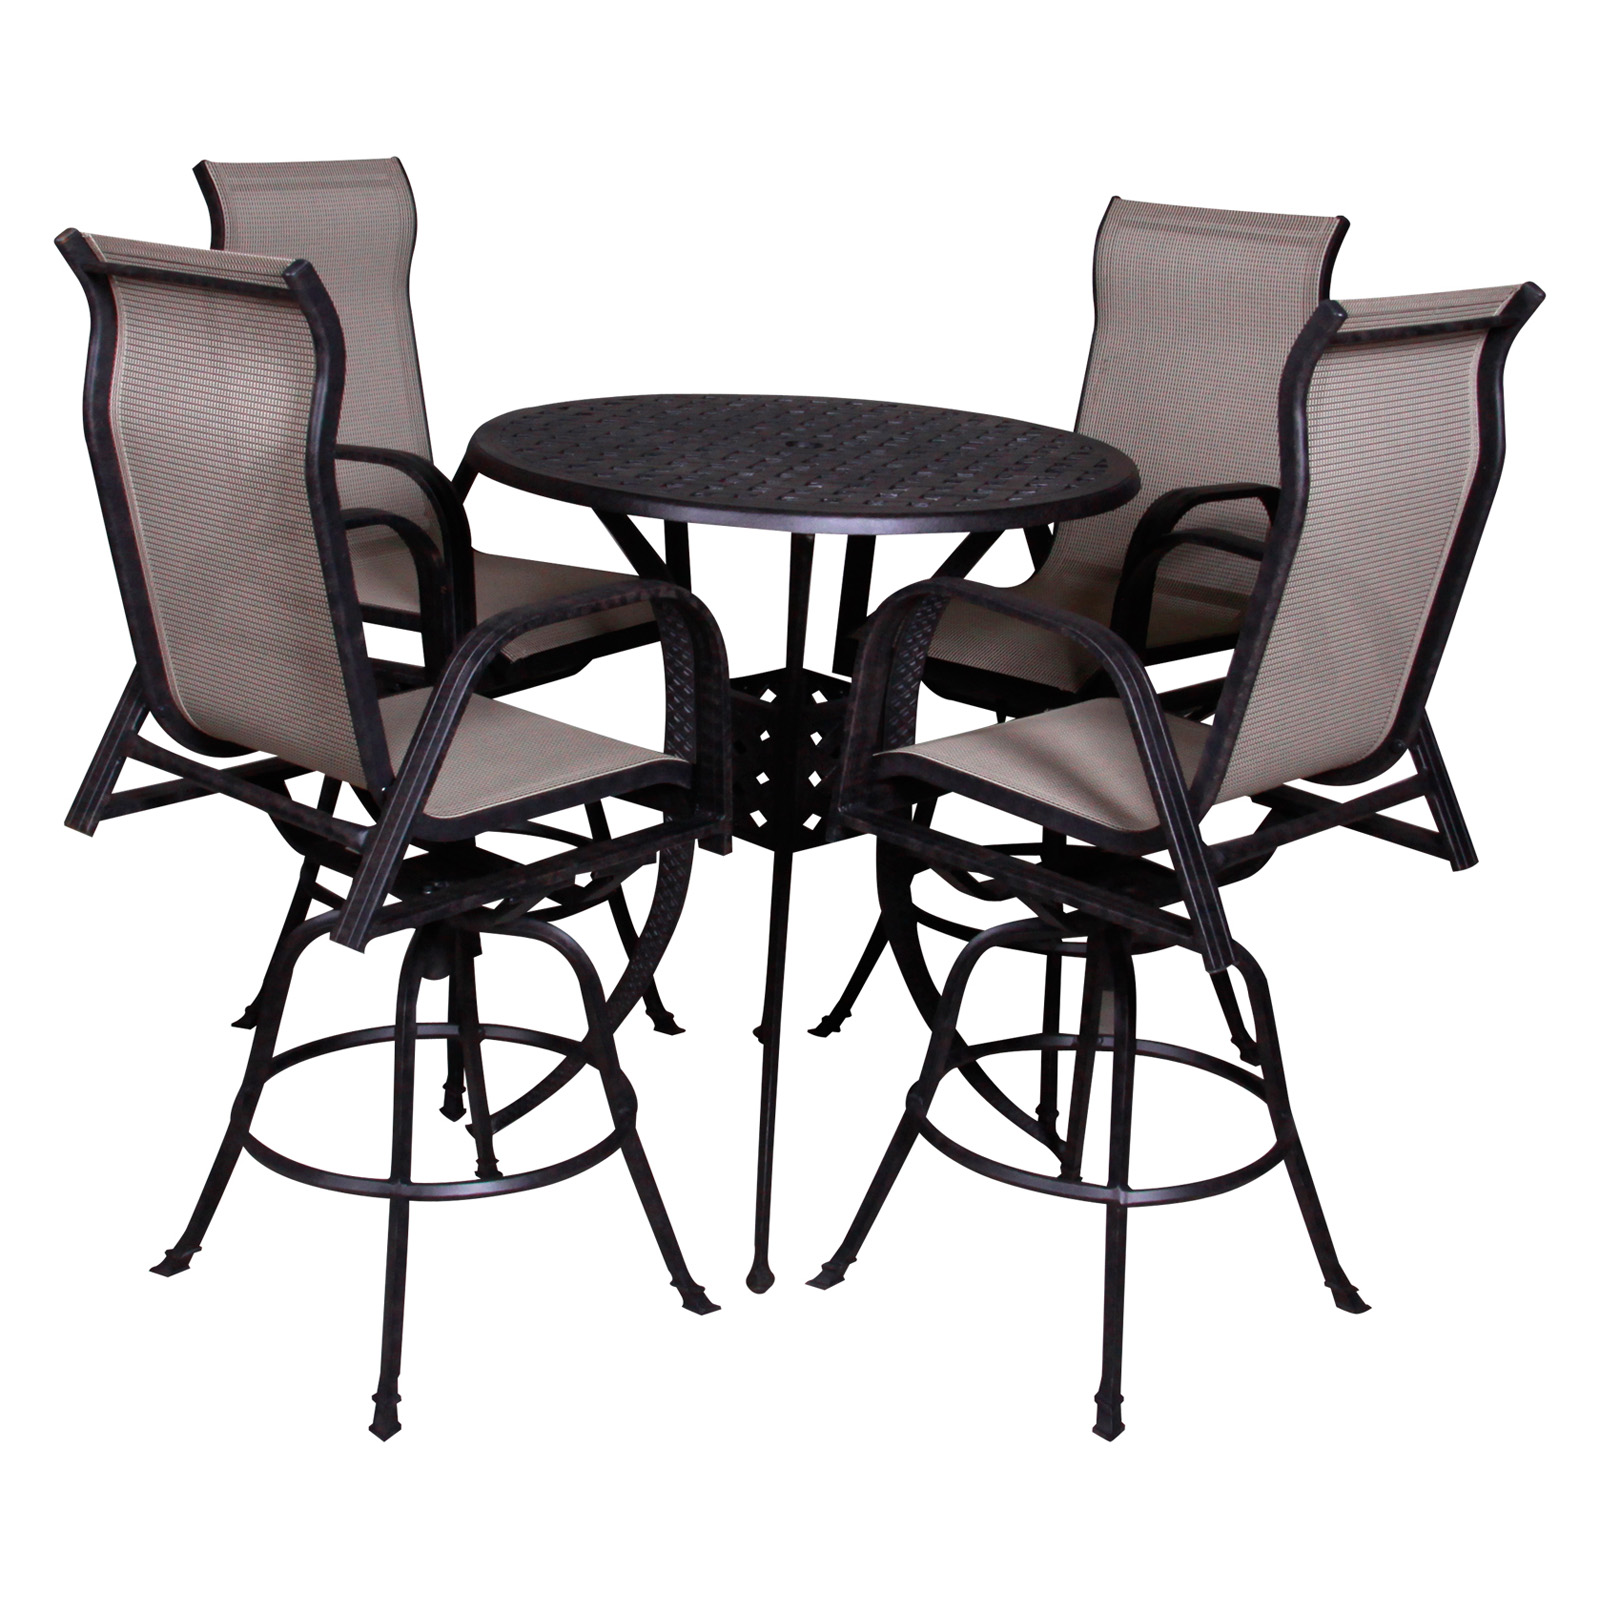 redondo bar height fire pit patio dining set seats 4